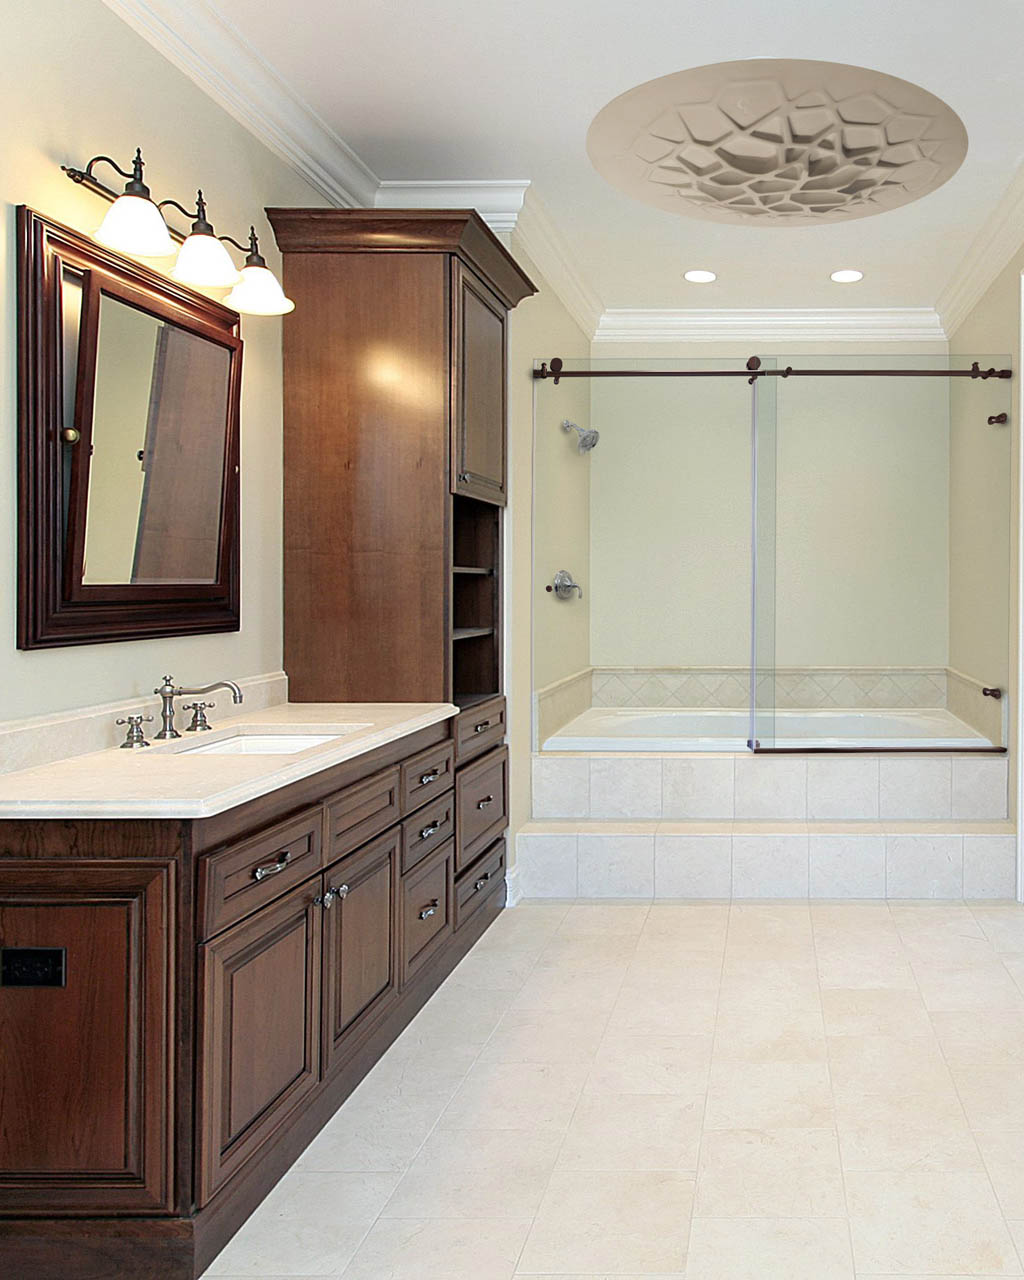 Metro Sliding Shower and Tub Doors | Dulles Glass and Mirror